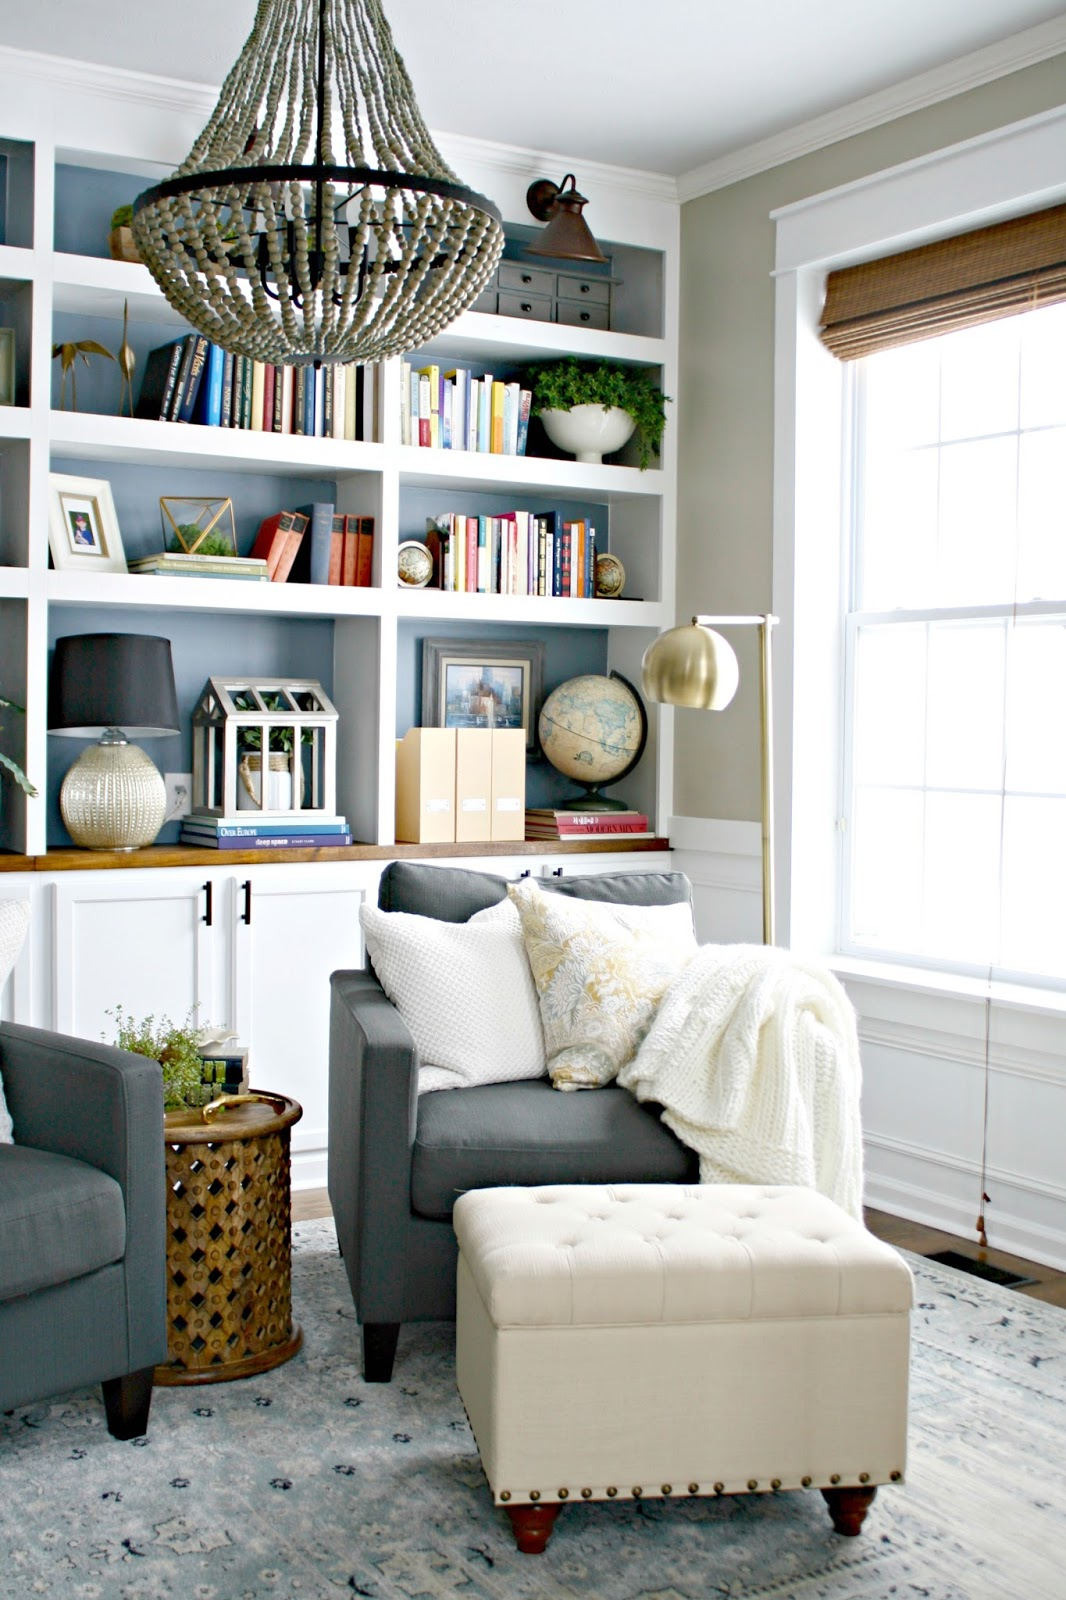 My favorite target lighting from thrifty decor chick i love mixing styles just a bit im not an eclectic decorator per se but i do like some unexpected touches that turned floor lamp aloadofball Image collections